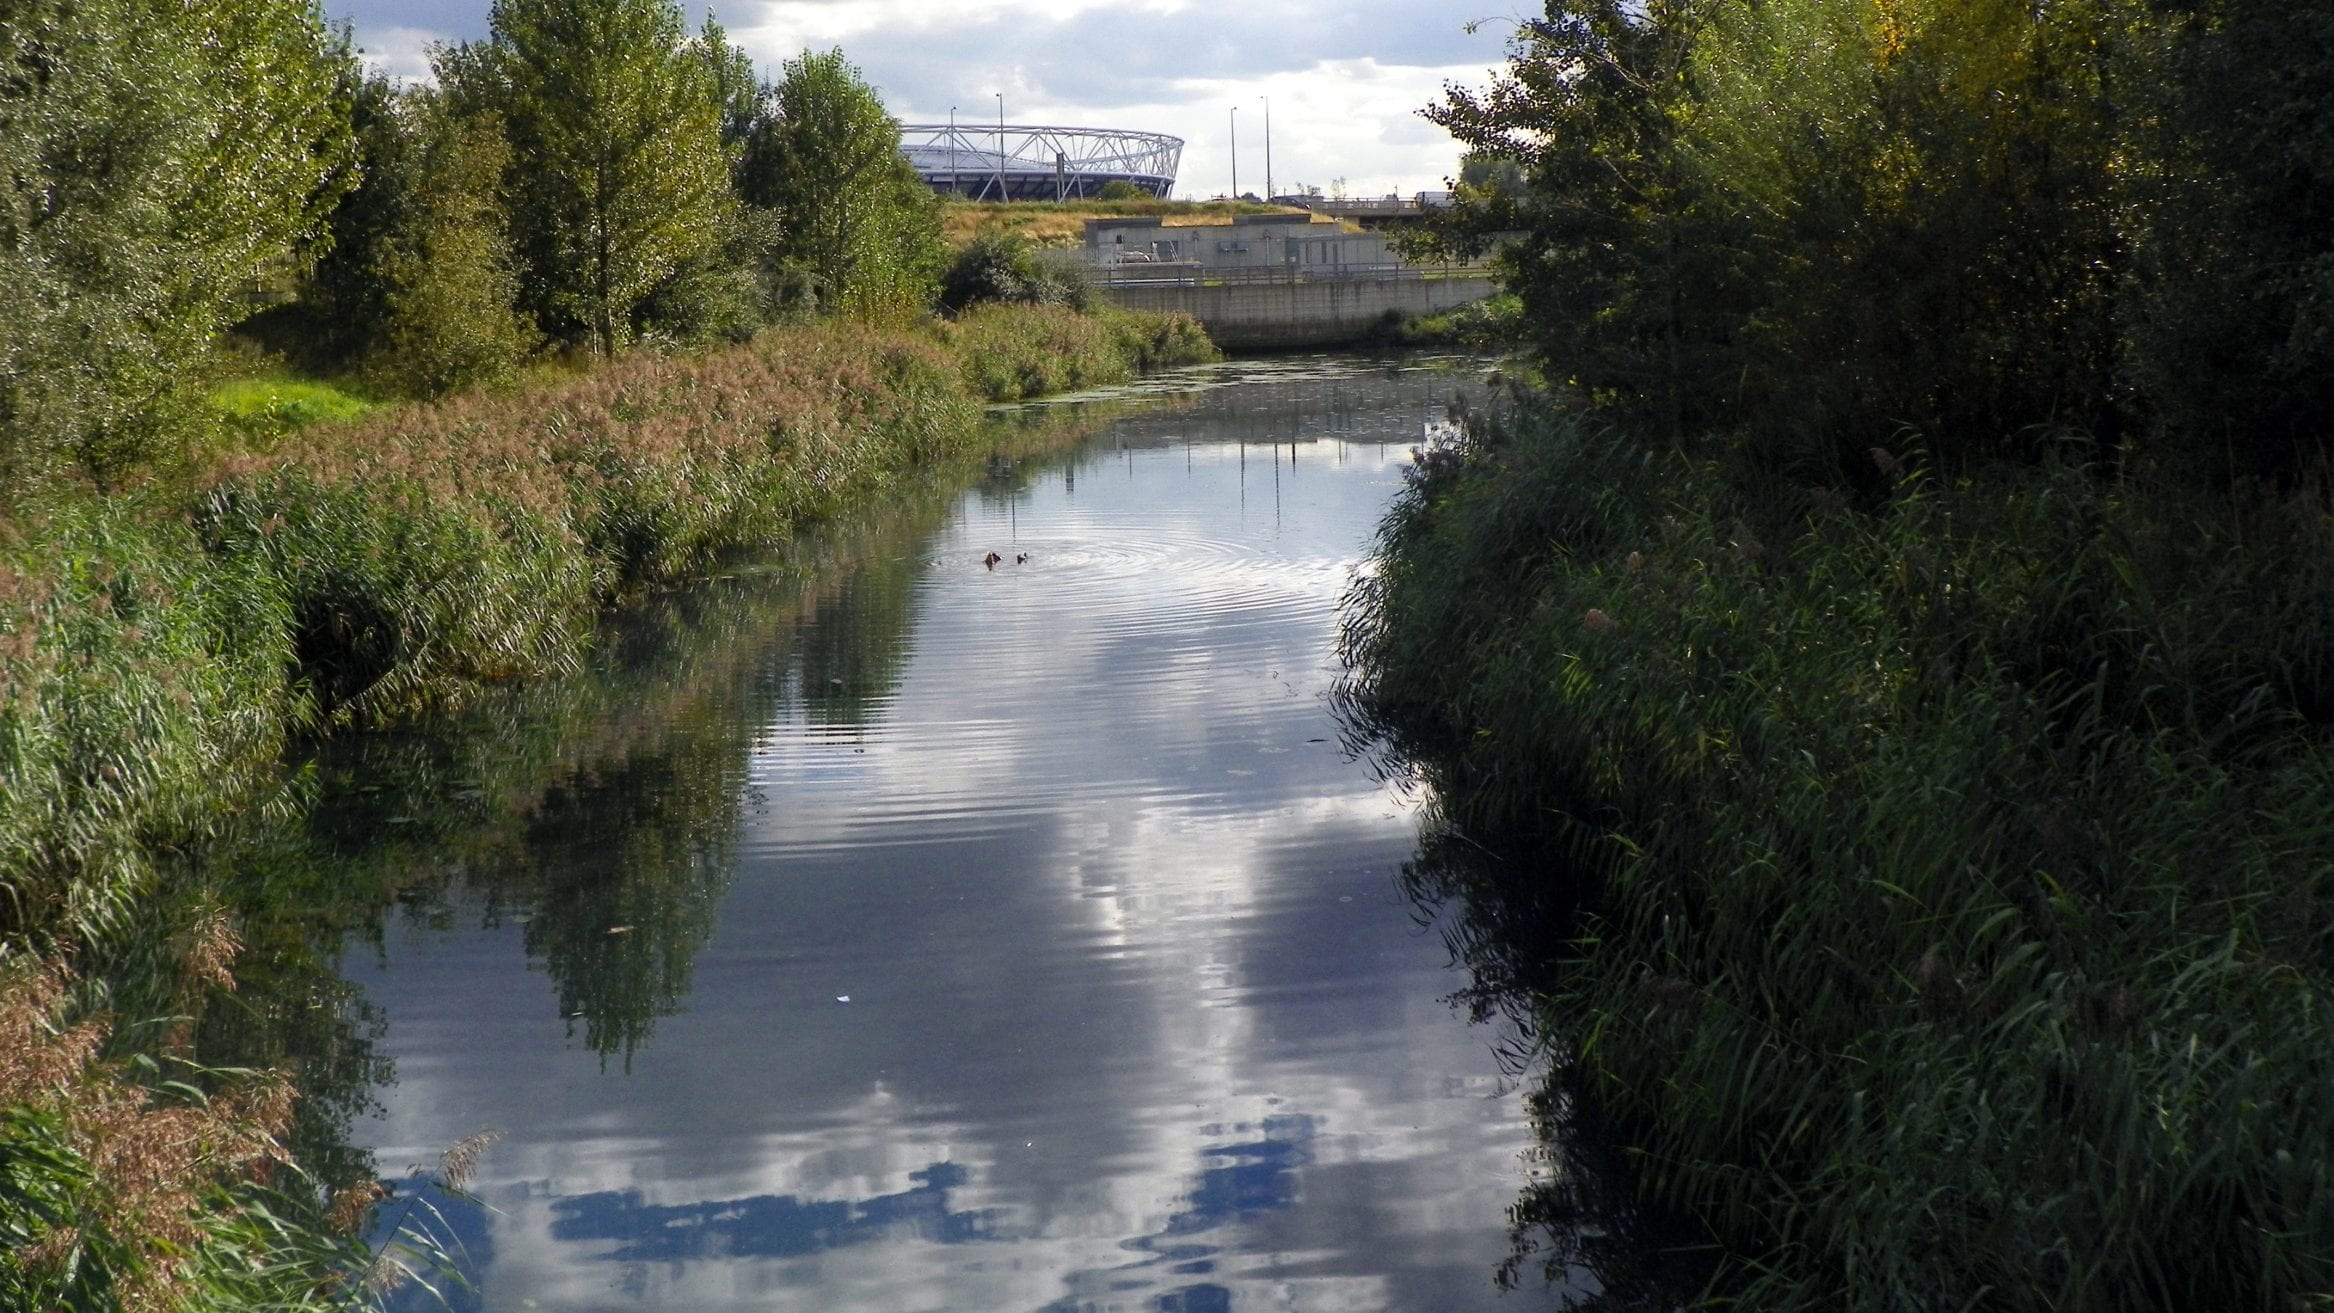 It has been revealed by The Guardian that raw sewage flowed from a Thames Water overflow pipe into an environmental wetland within the London Olympic Park 91 times over 1,026 hours during 2019.